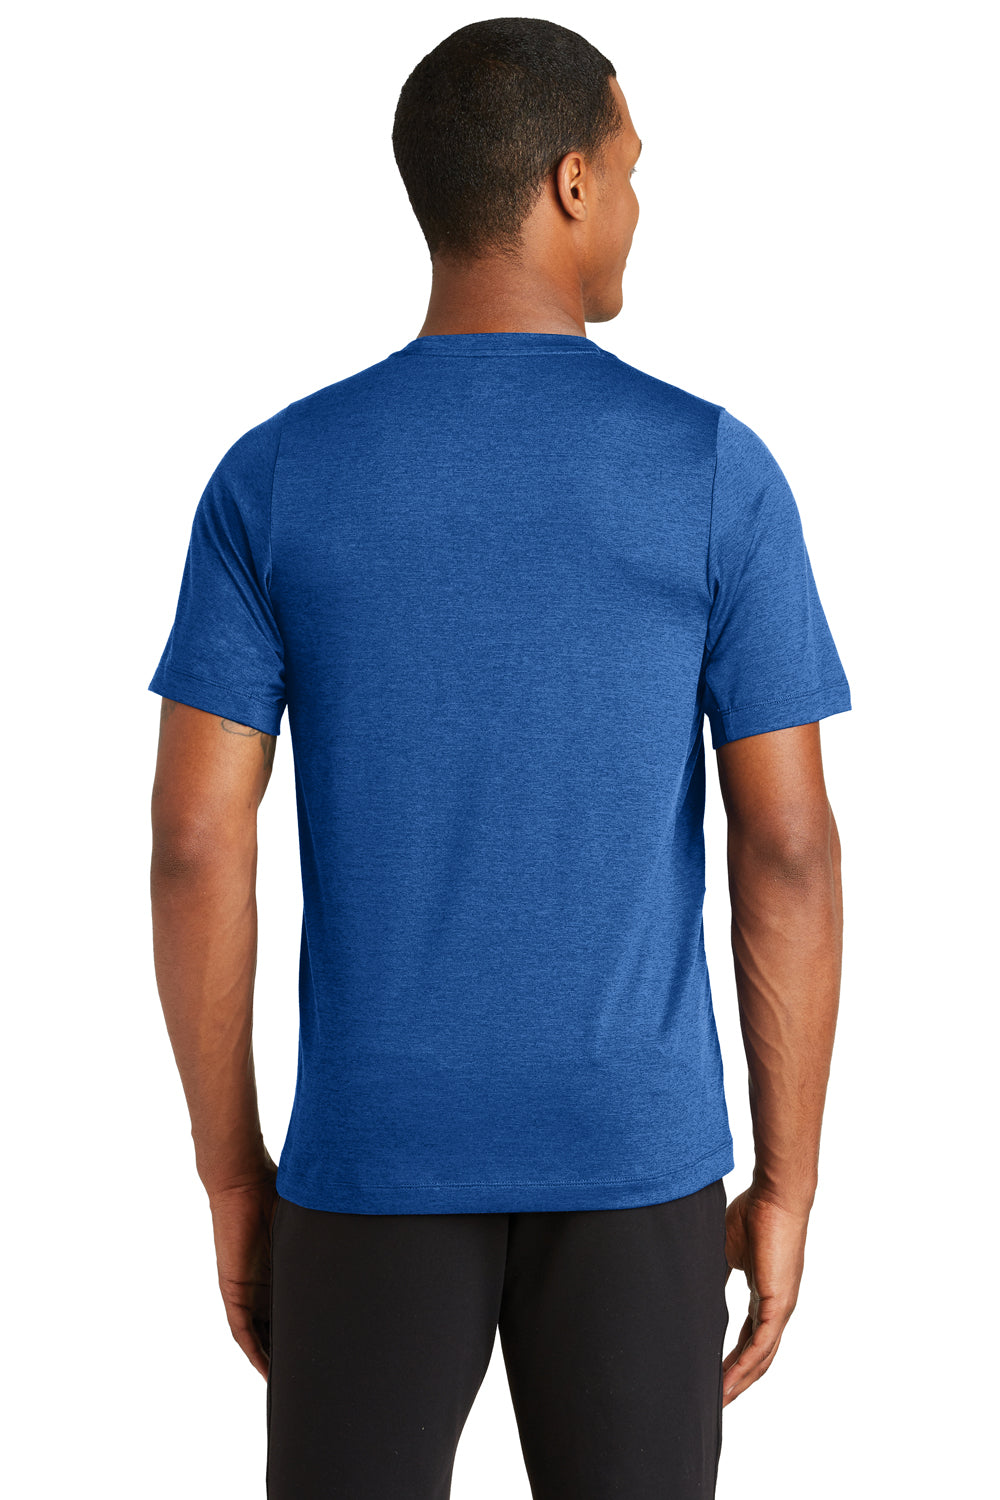 New Era NEA200 Mens Series Performance Jersey Moisture Wicking Short Sleeve Crewneck T-Shirt Royal Blue Back